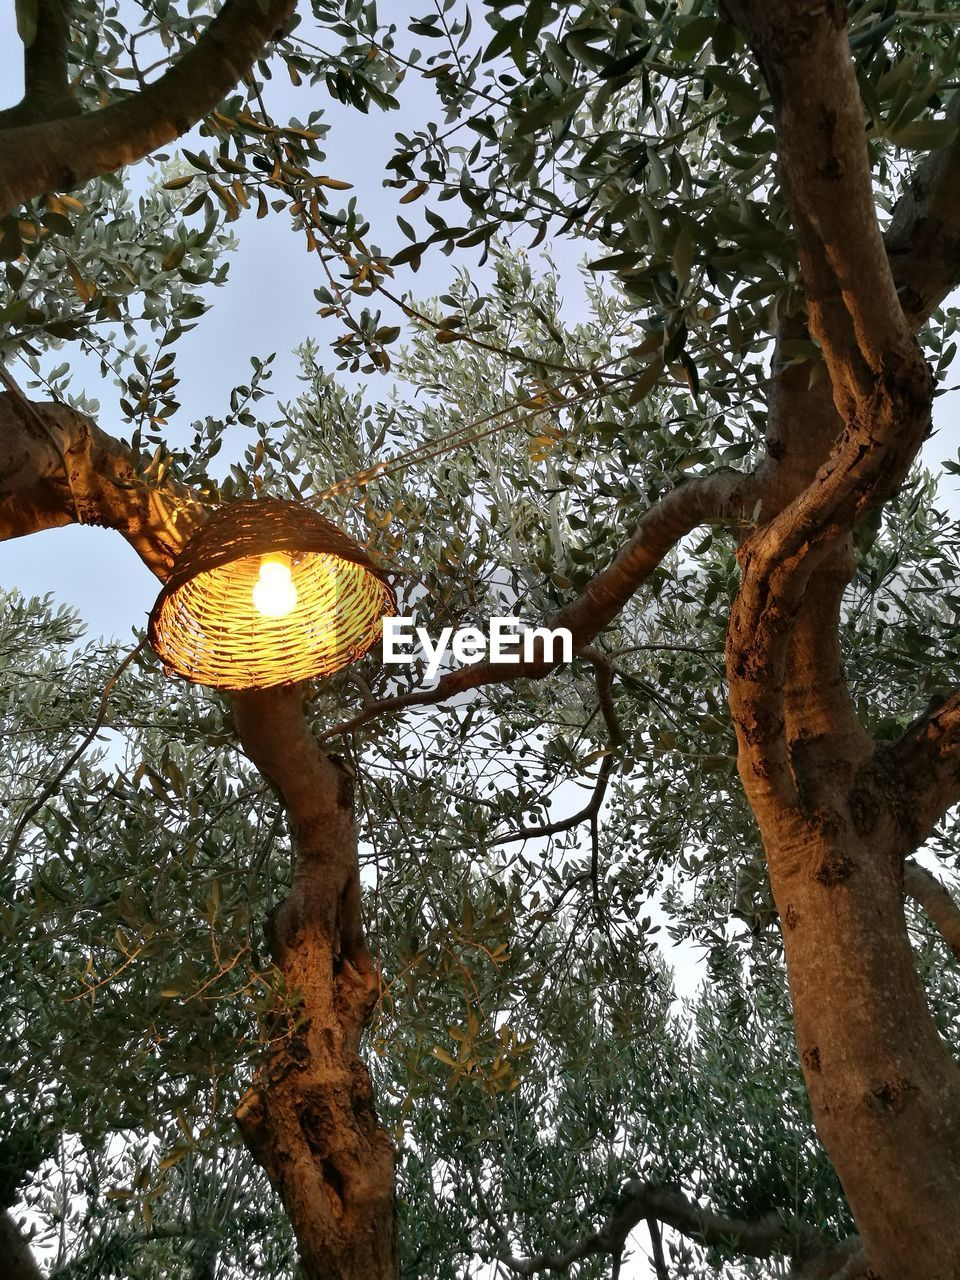 Low angle view of illuminated light bulb hanging from olive tree